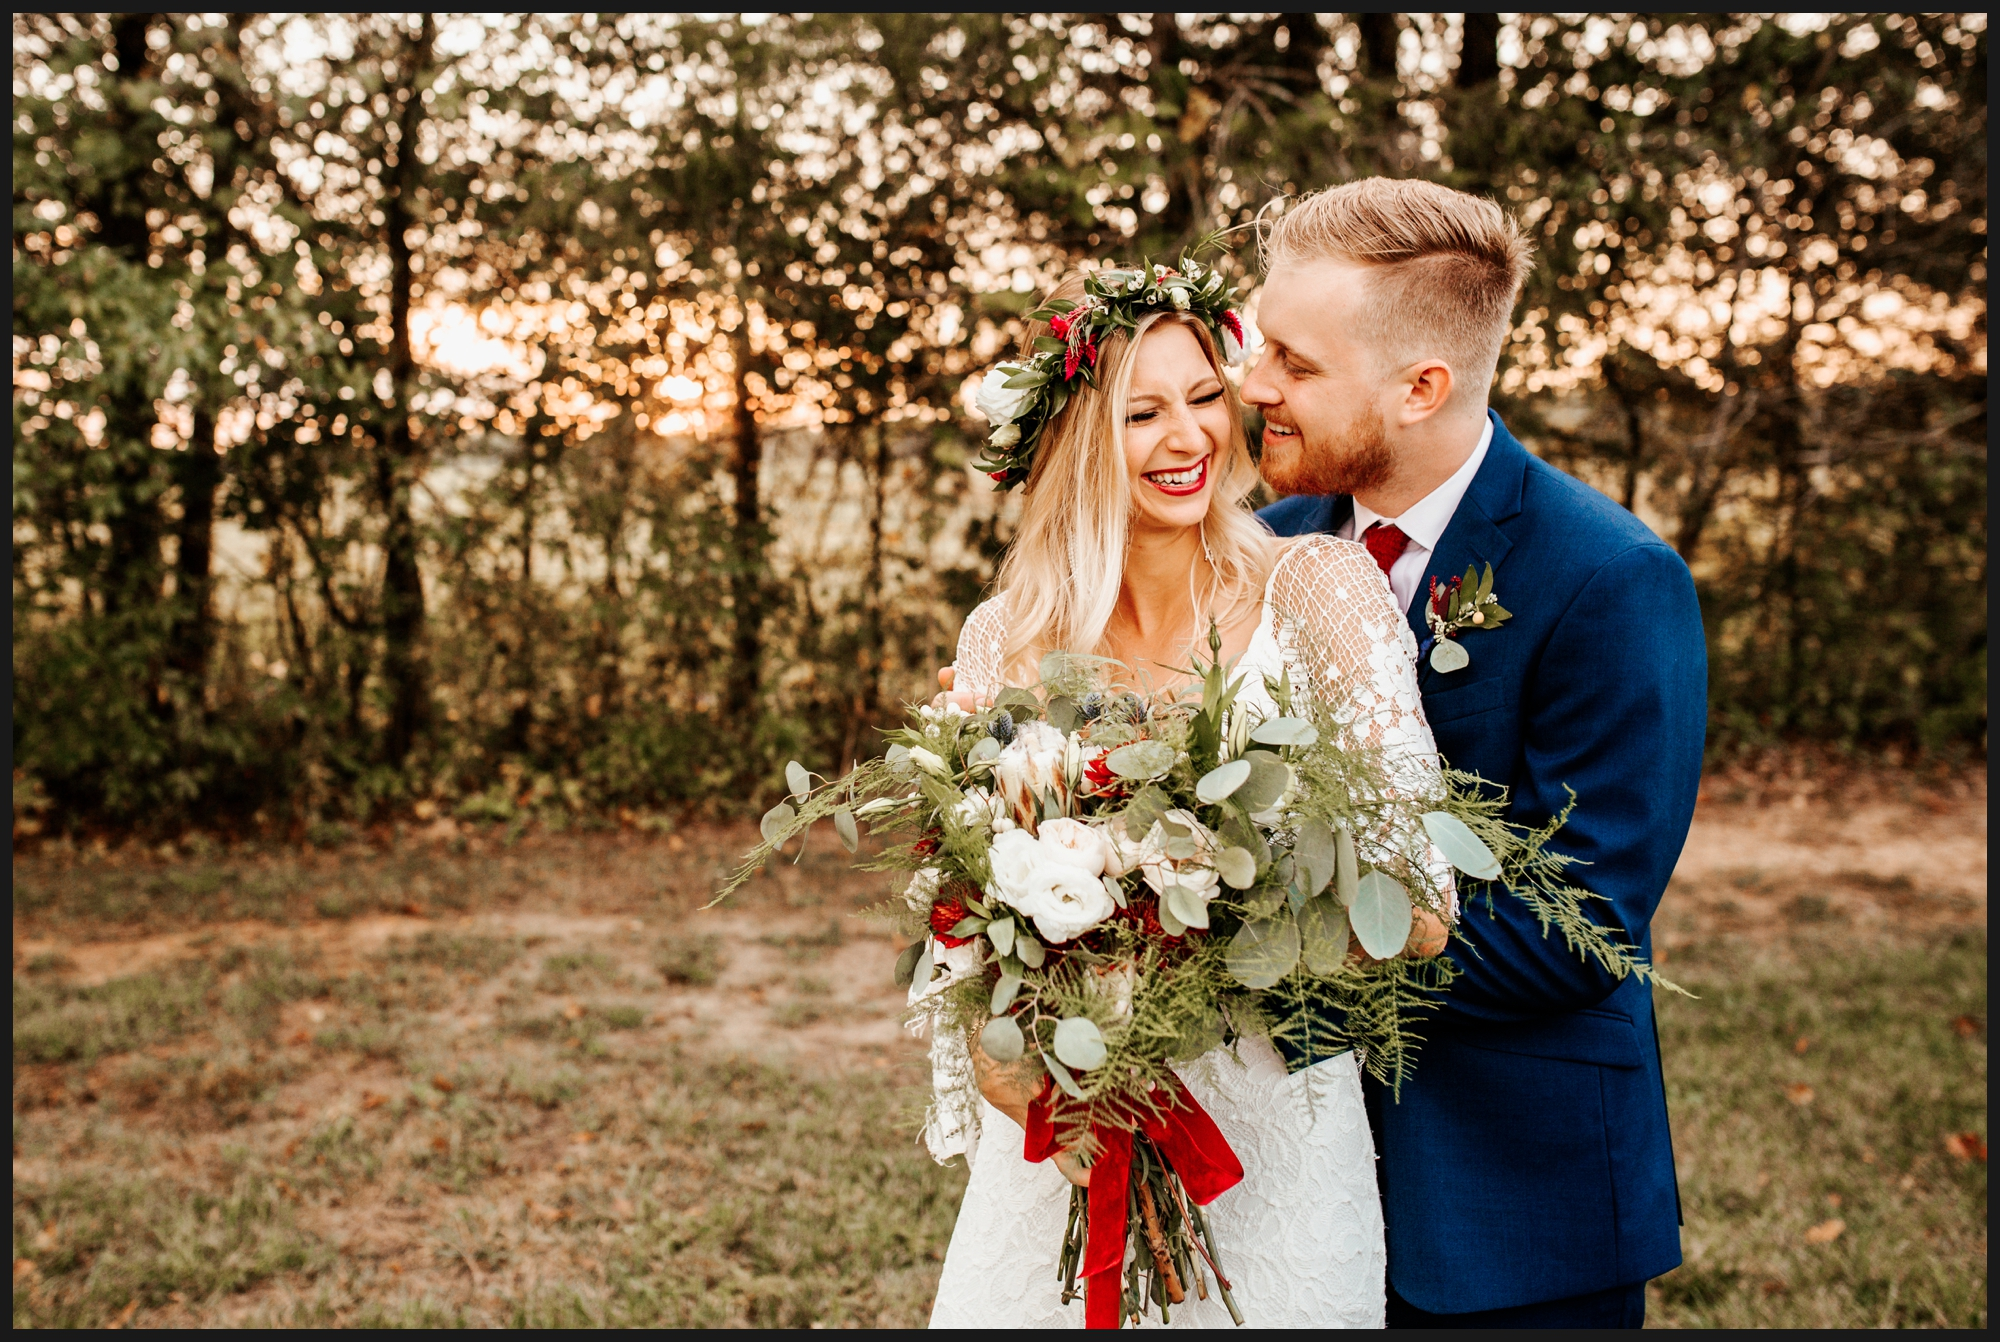 Orlando-Wedding-Photographer-destination-wedding-photographer-florida-wedding-photographer-bohemian-wedding-photographer_0196.jpg